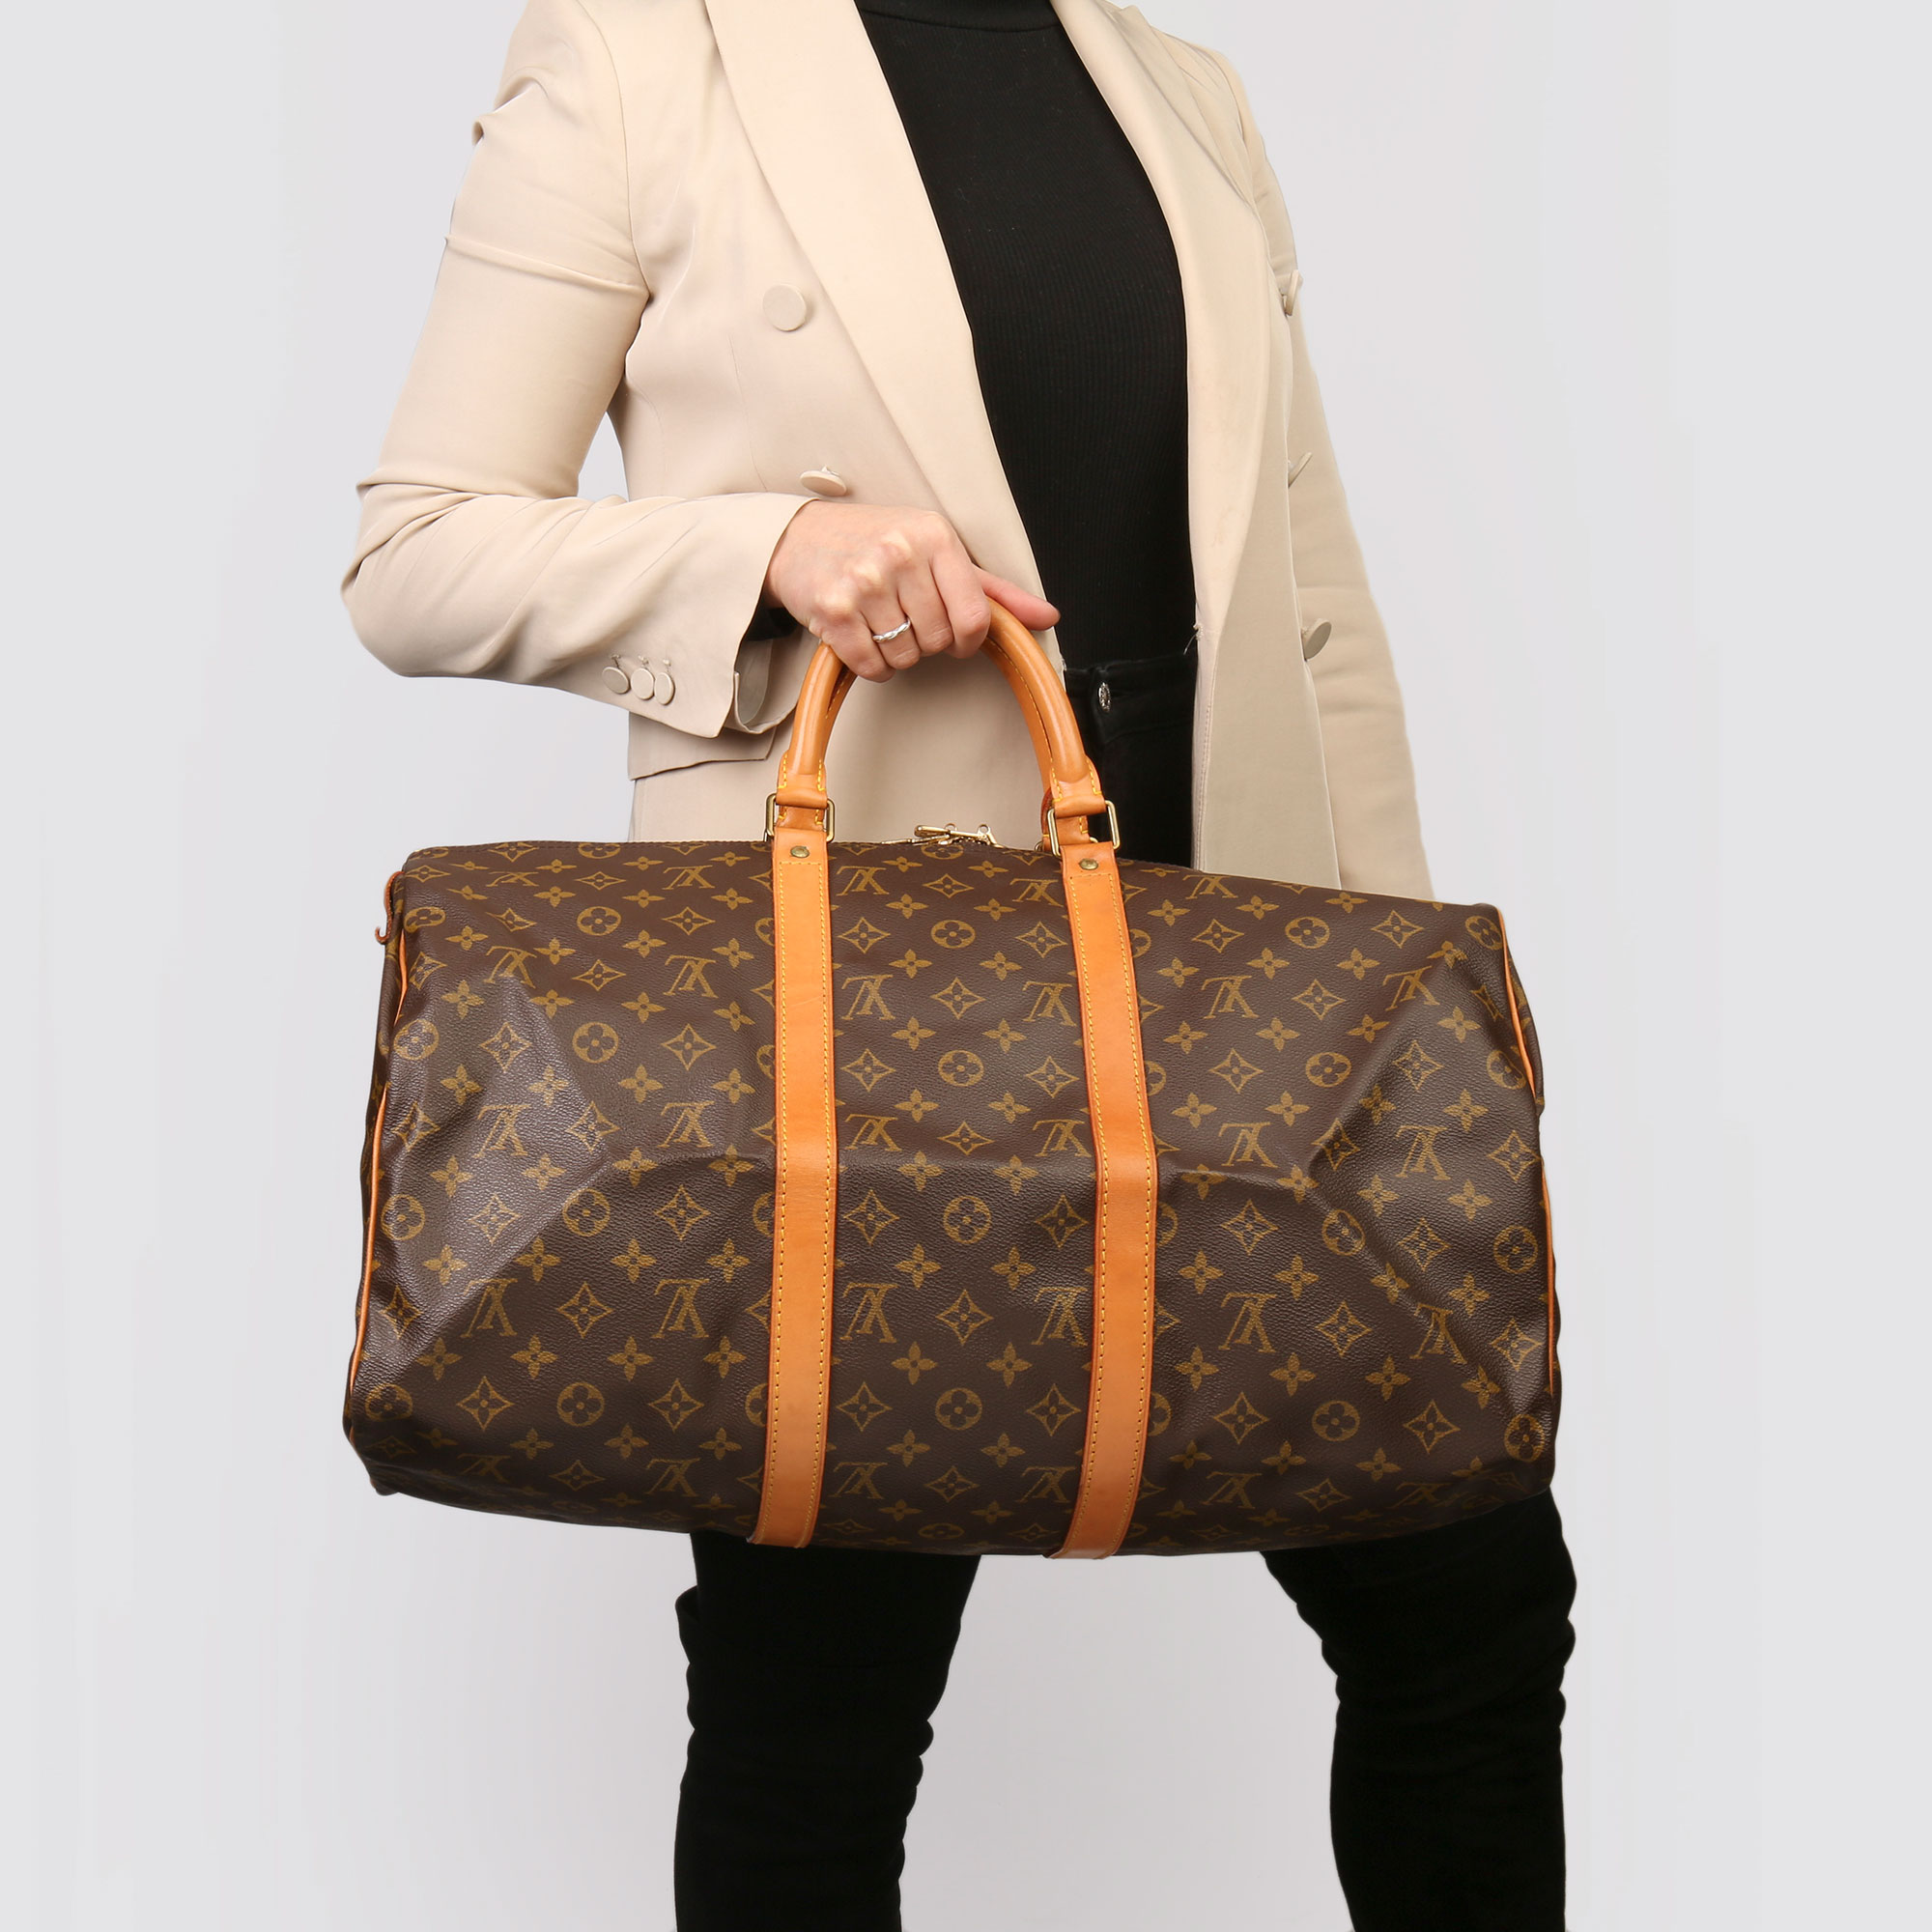 Louis Vuitton Brown Monogram Coated Canvas & Vachetta Leather Vintage Keepall 50 - Image 2 of 11